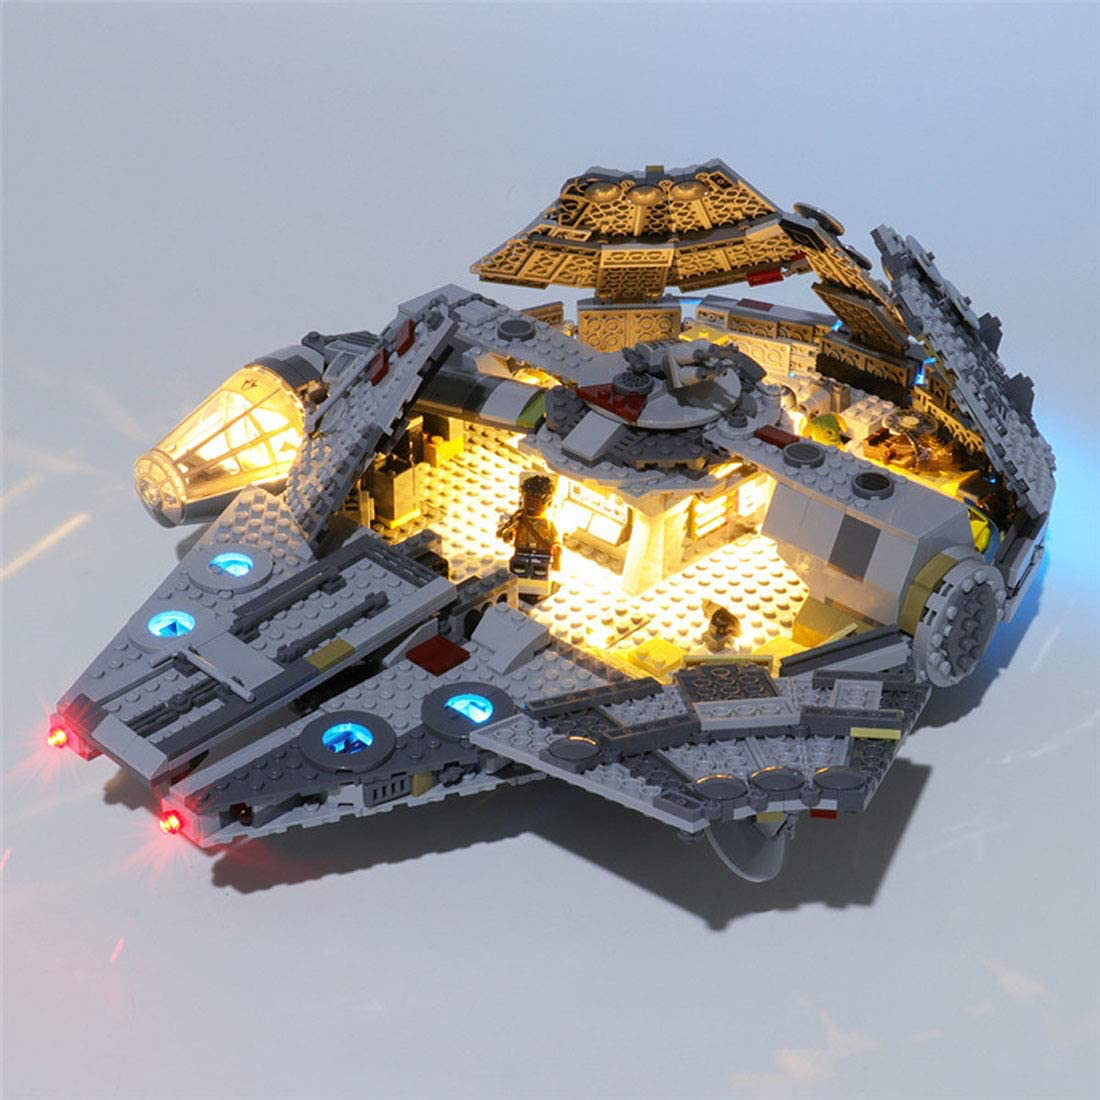 TROS Millennium Falcon LED Light Lego set 3